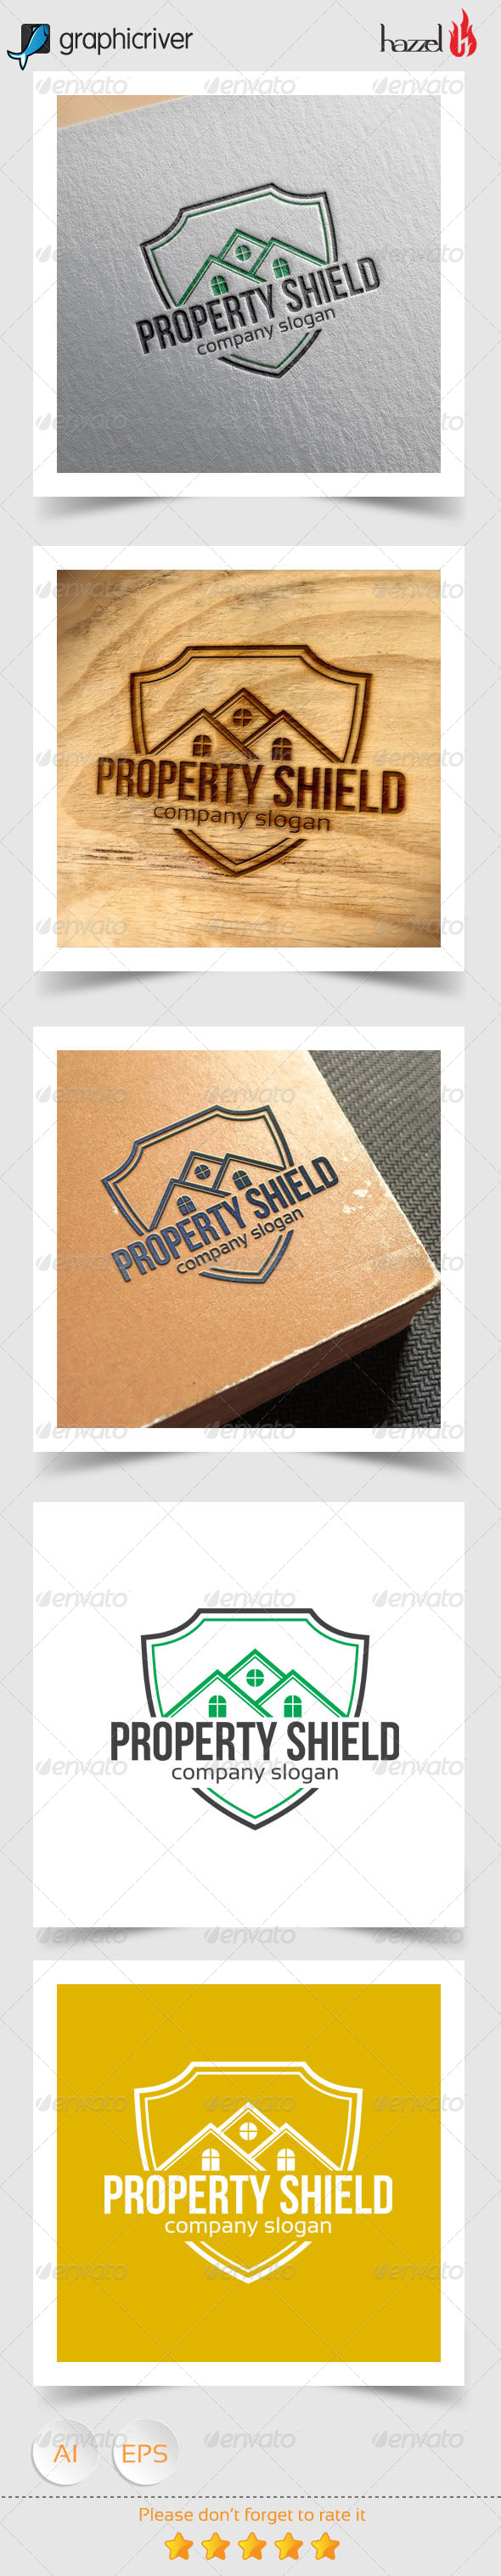 GraphicRiver Property Shield Logo 8340657